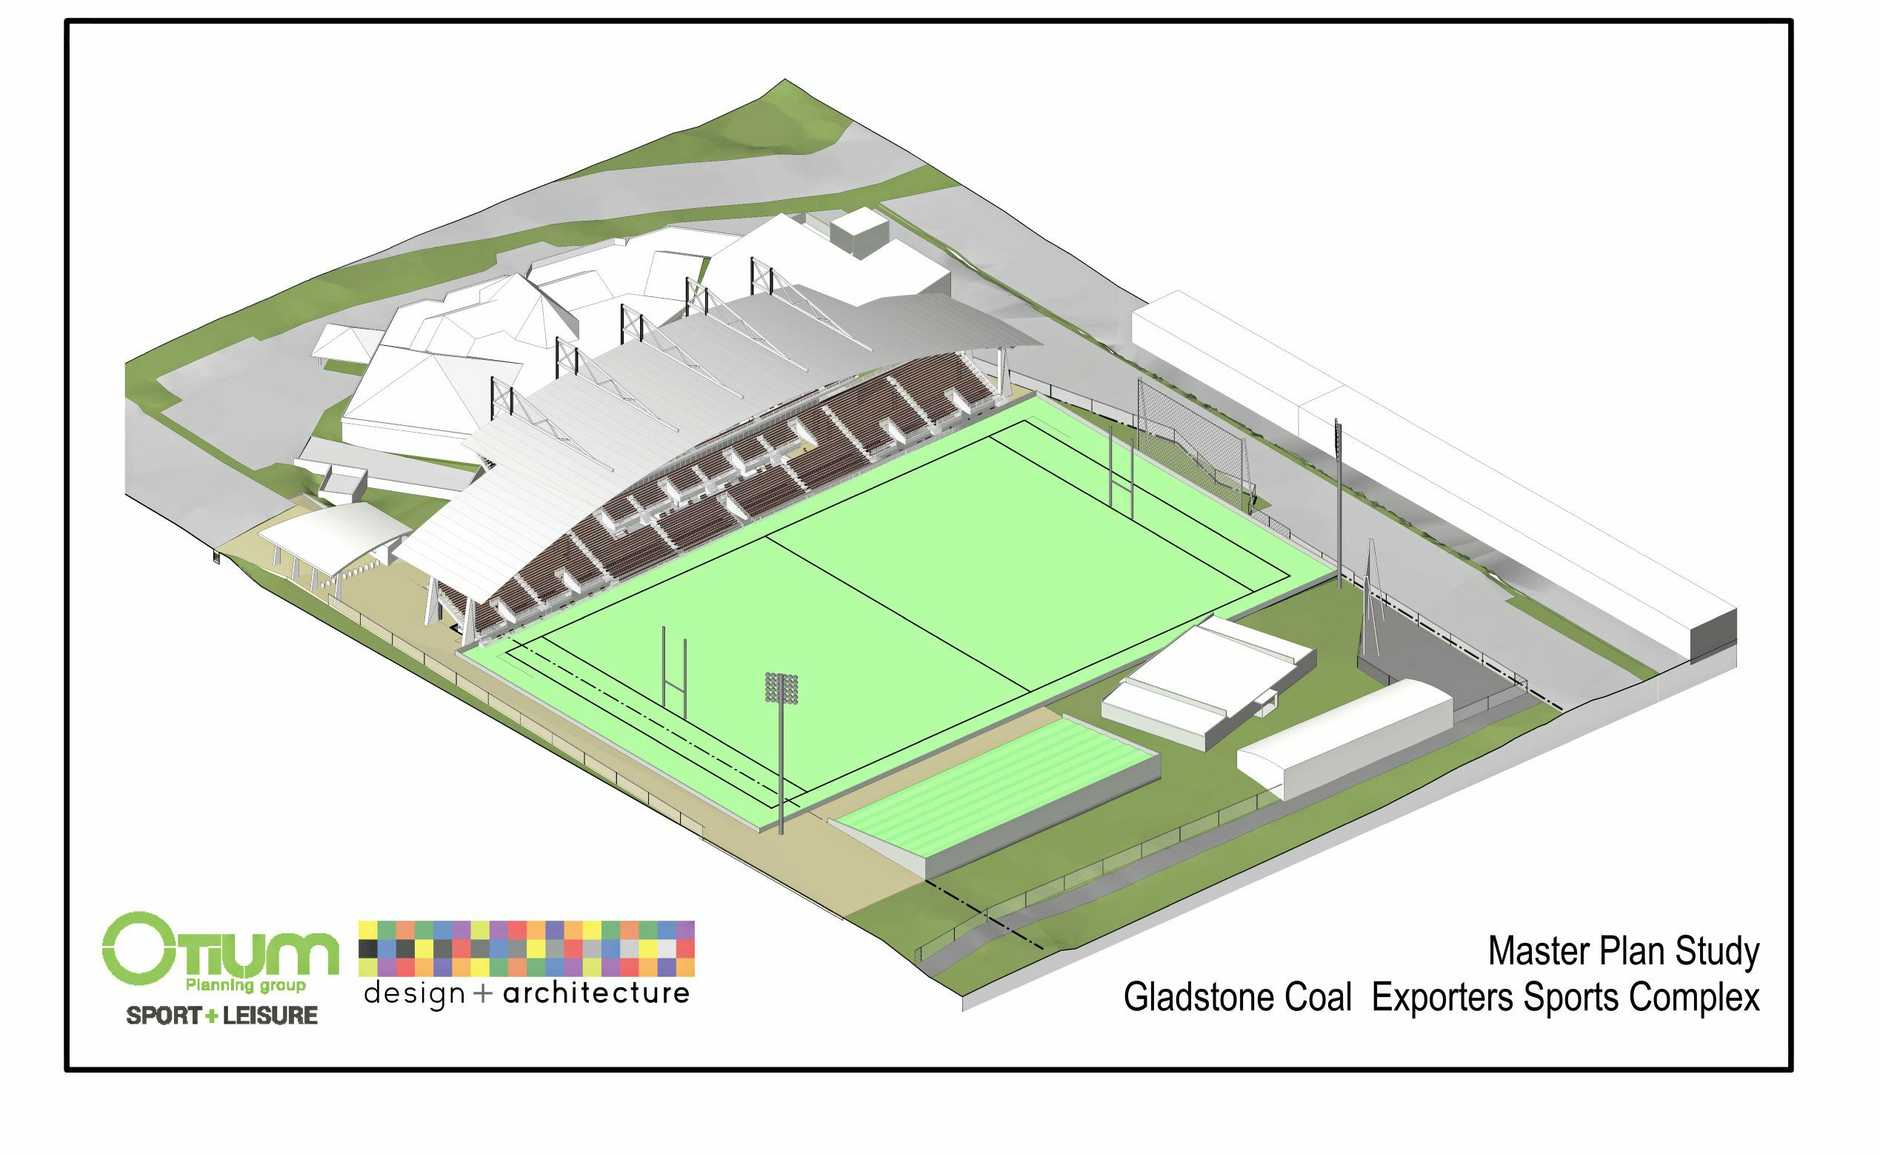 Master plan design of the Gladstone Coal Exporters Sports Complex (Marley Brown Oval). The ground's reconfiguration would involve turning the ground 90 degrees and constructing a new 5000-seat grandstand in front of Harvey Road Tavern. The existing 1000-seat grandstand would be removed with the possibility of relocating it to another sporting ground.